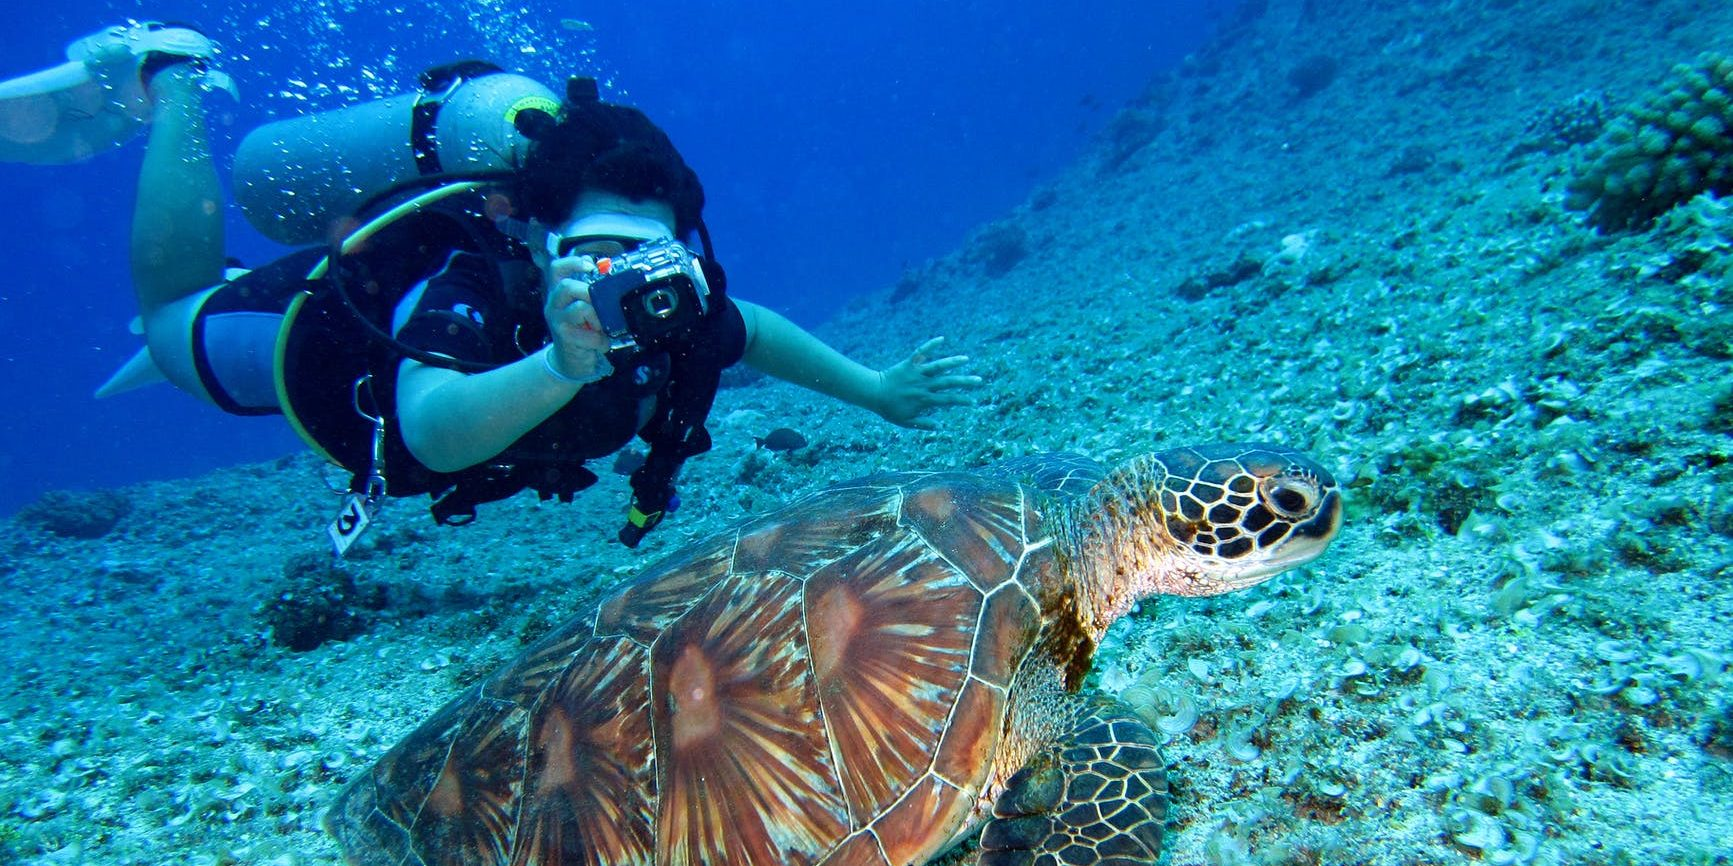 A diver takes a photograph of a swimming sea turtle